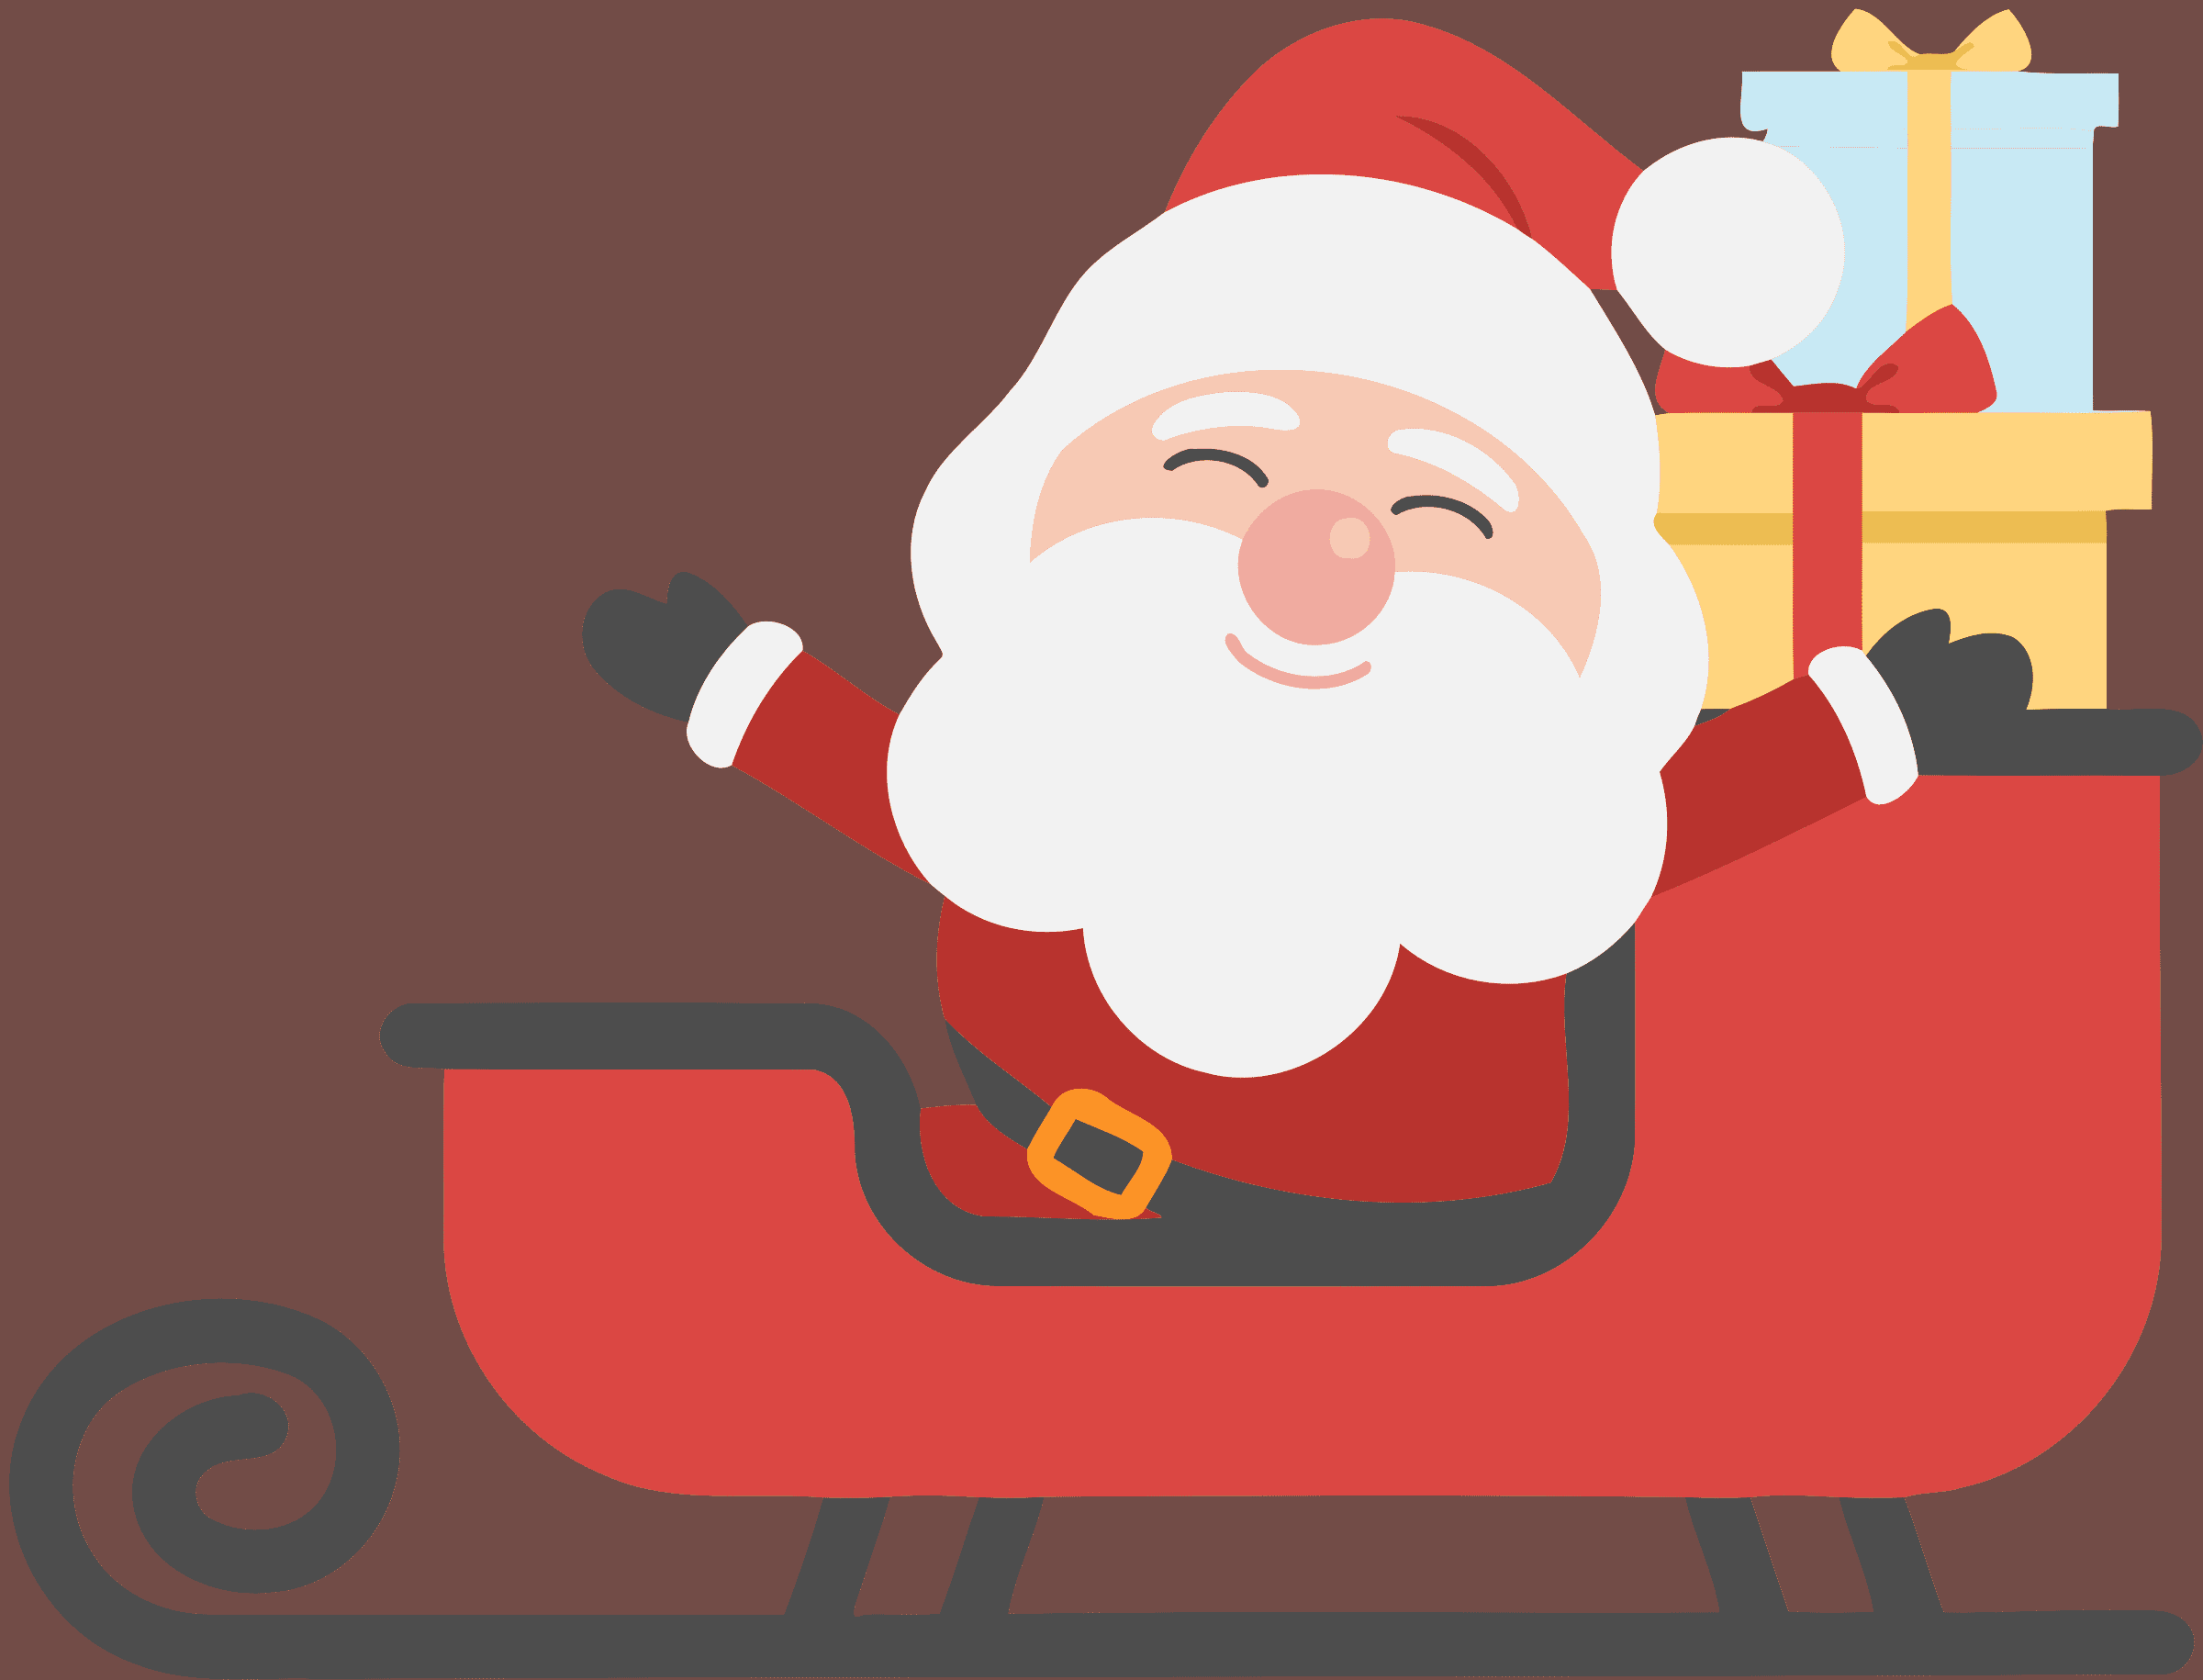 Free Santa Clipart Images for Your Holiday Projects